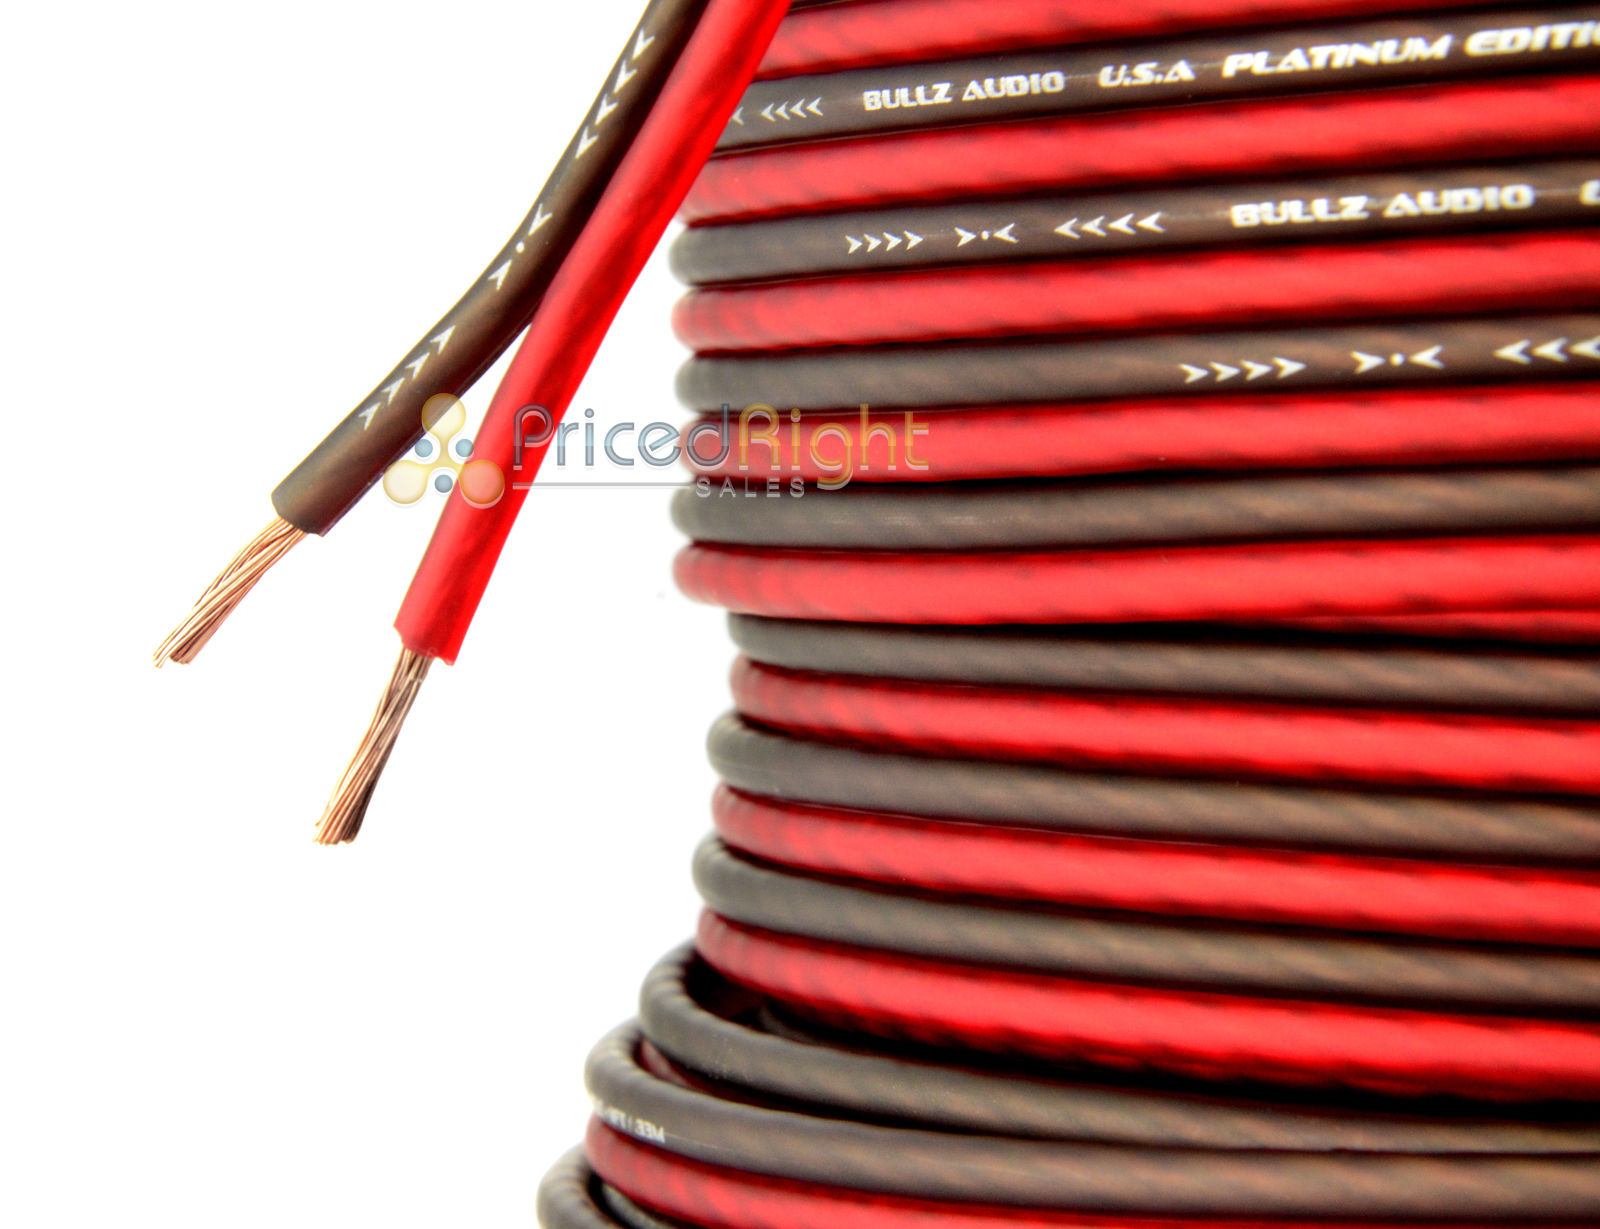 20 Ft 14 Gauge Professional Gauge Speaker Wire / Cable Car Home ...